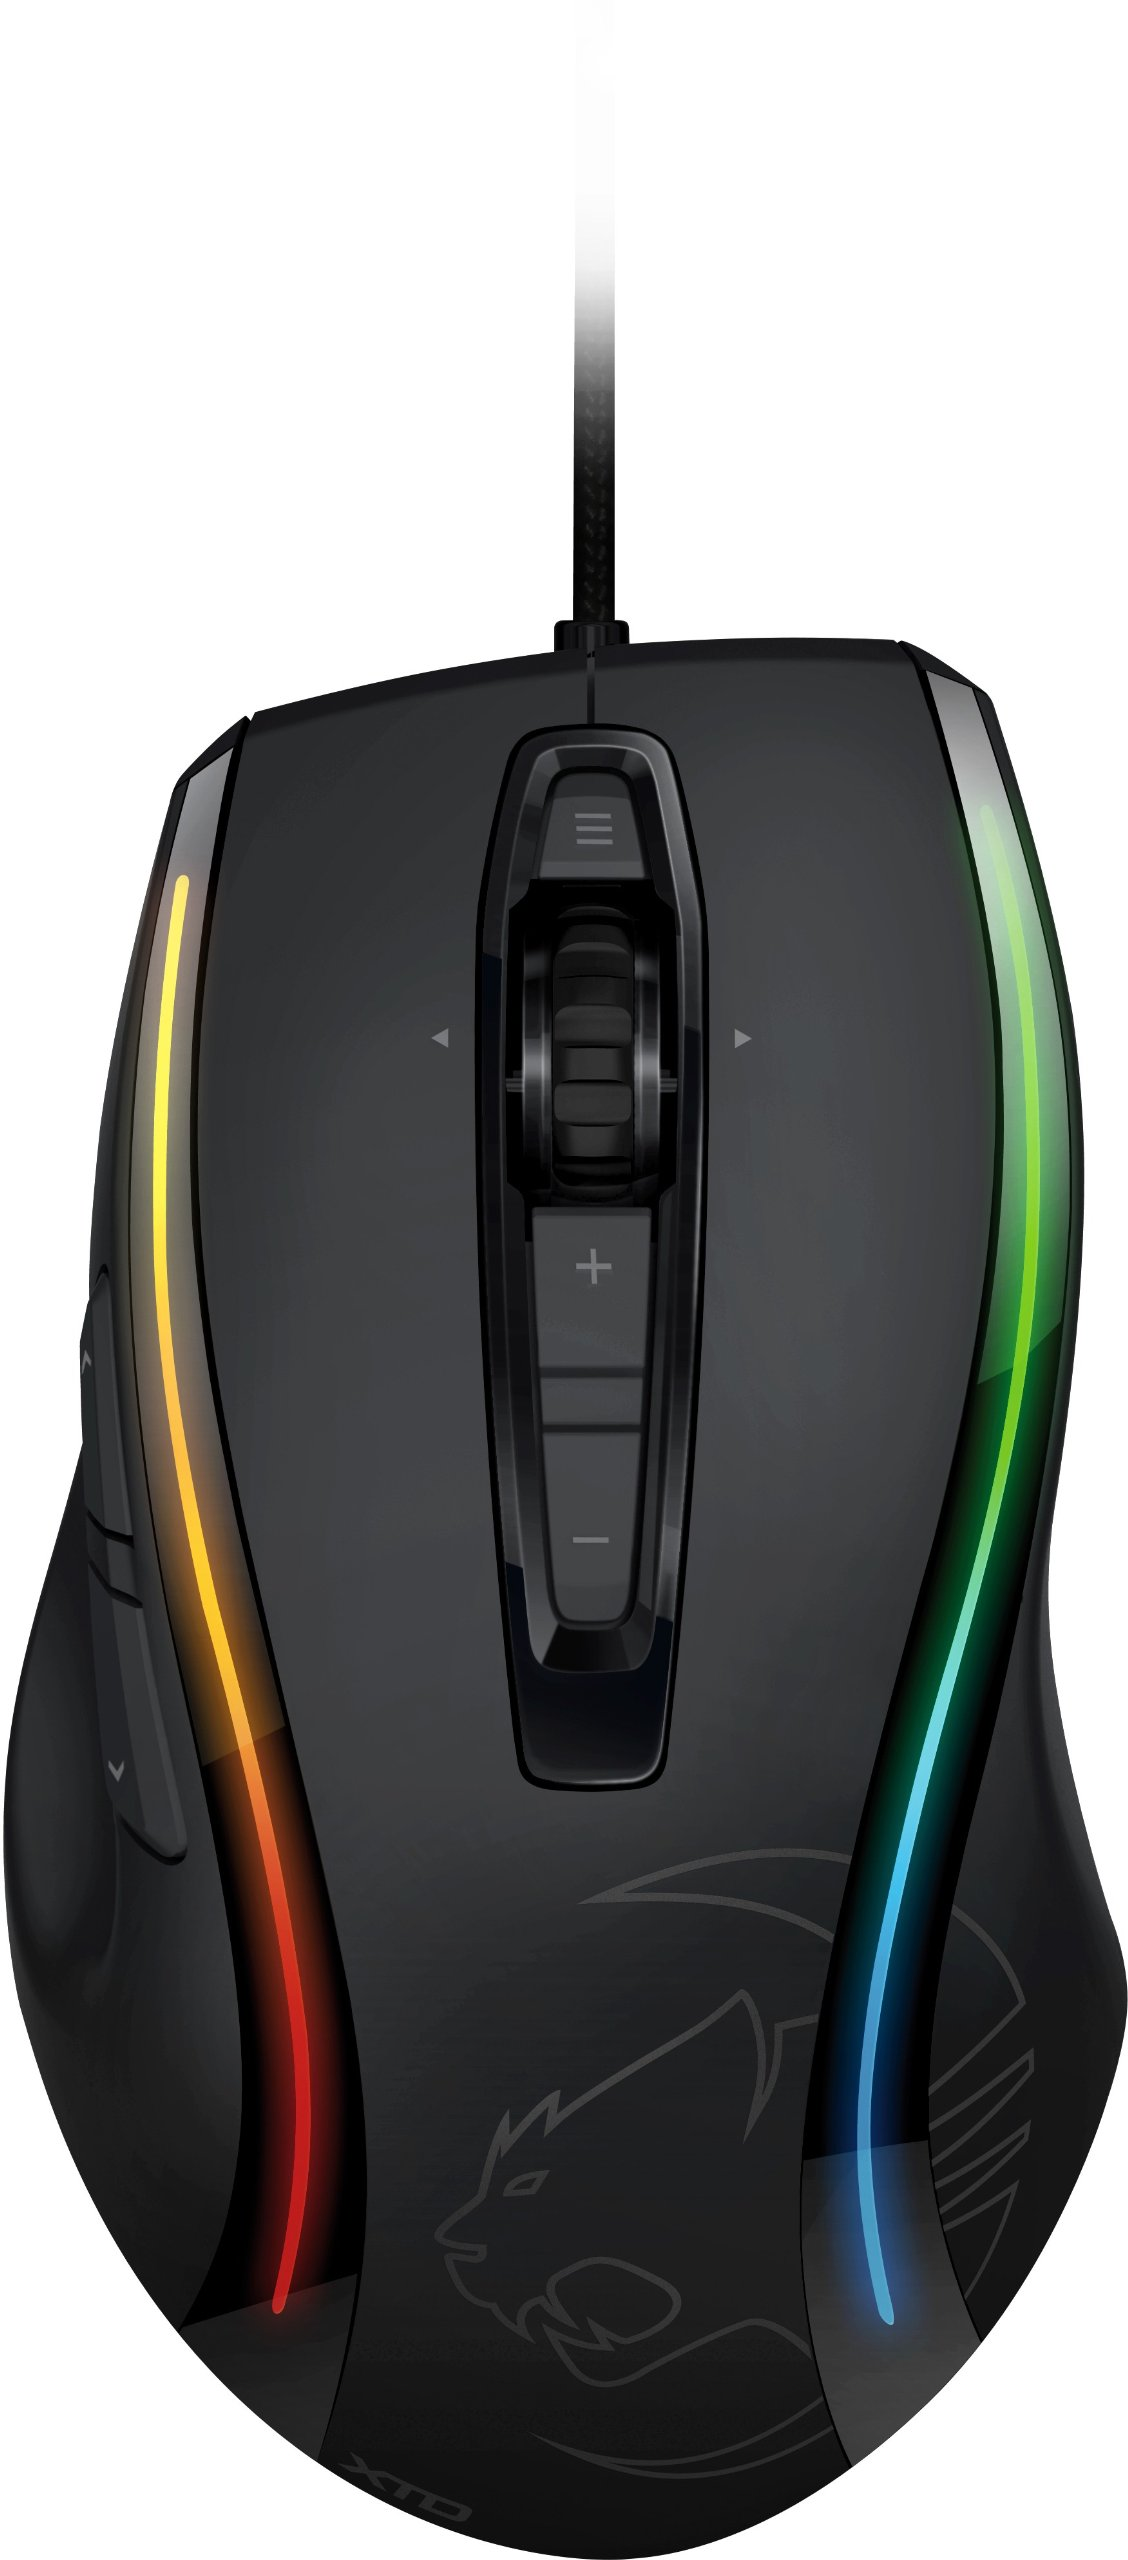 ROCCAT KONE XTD - Max Customization Gaming Mouse by ROCCAT (Image #2)